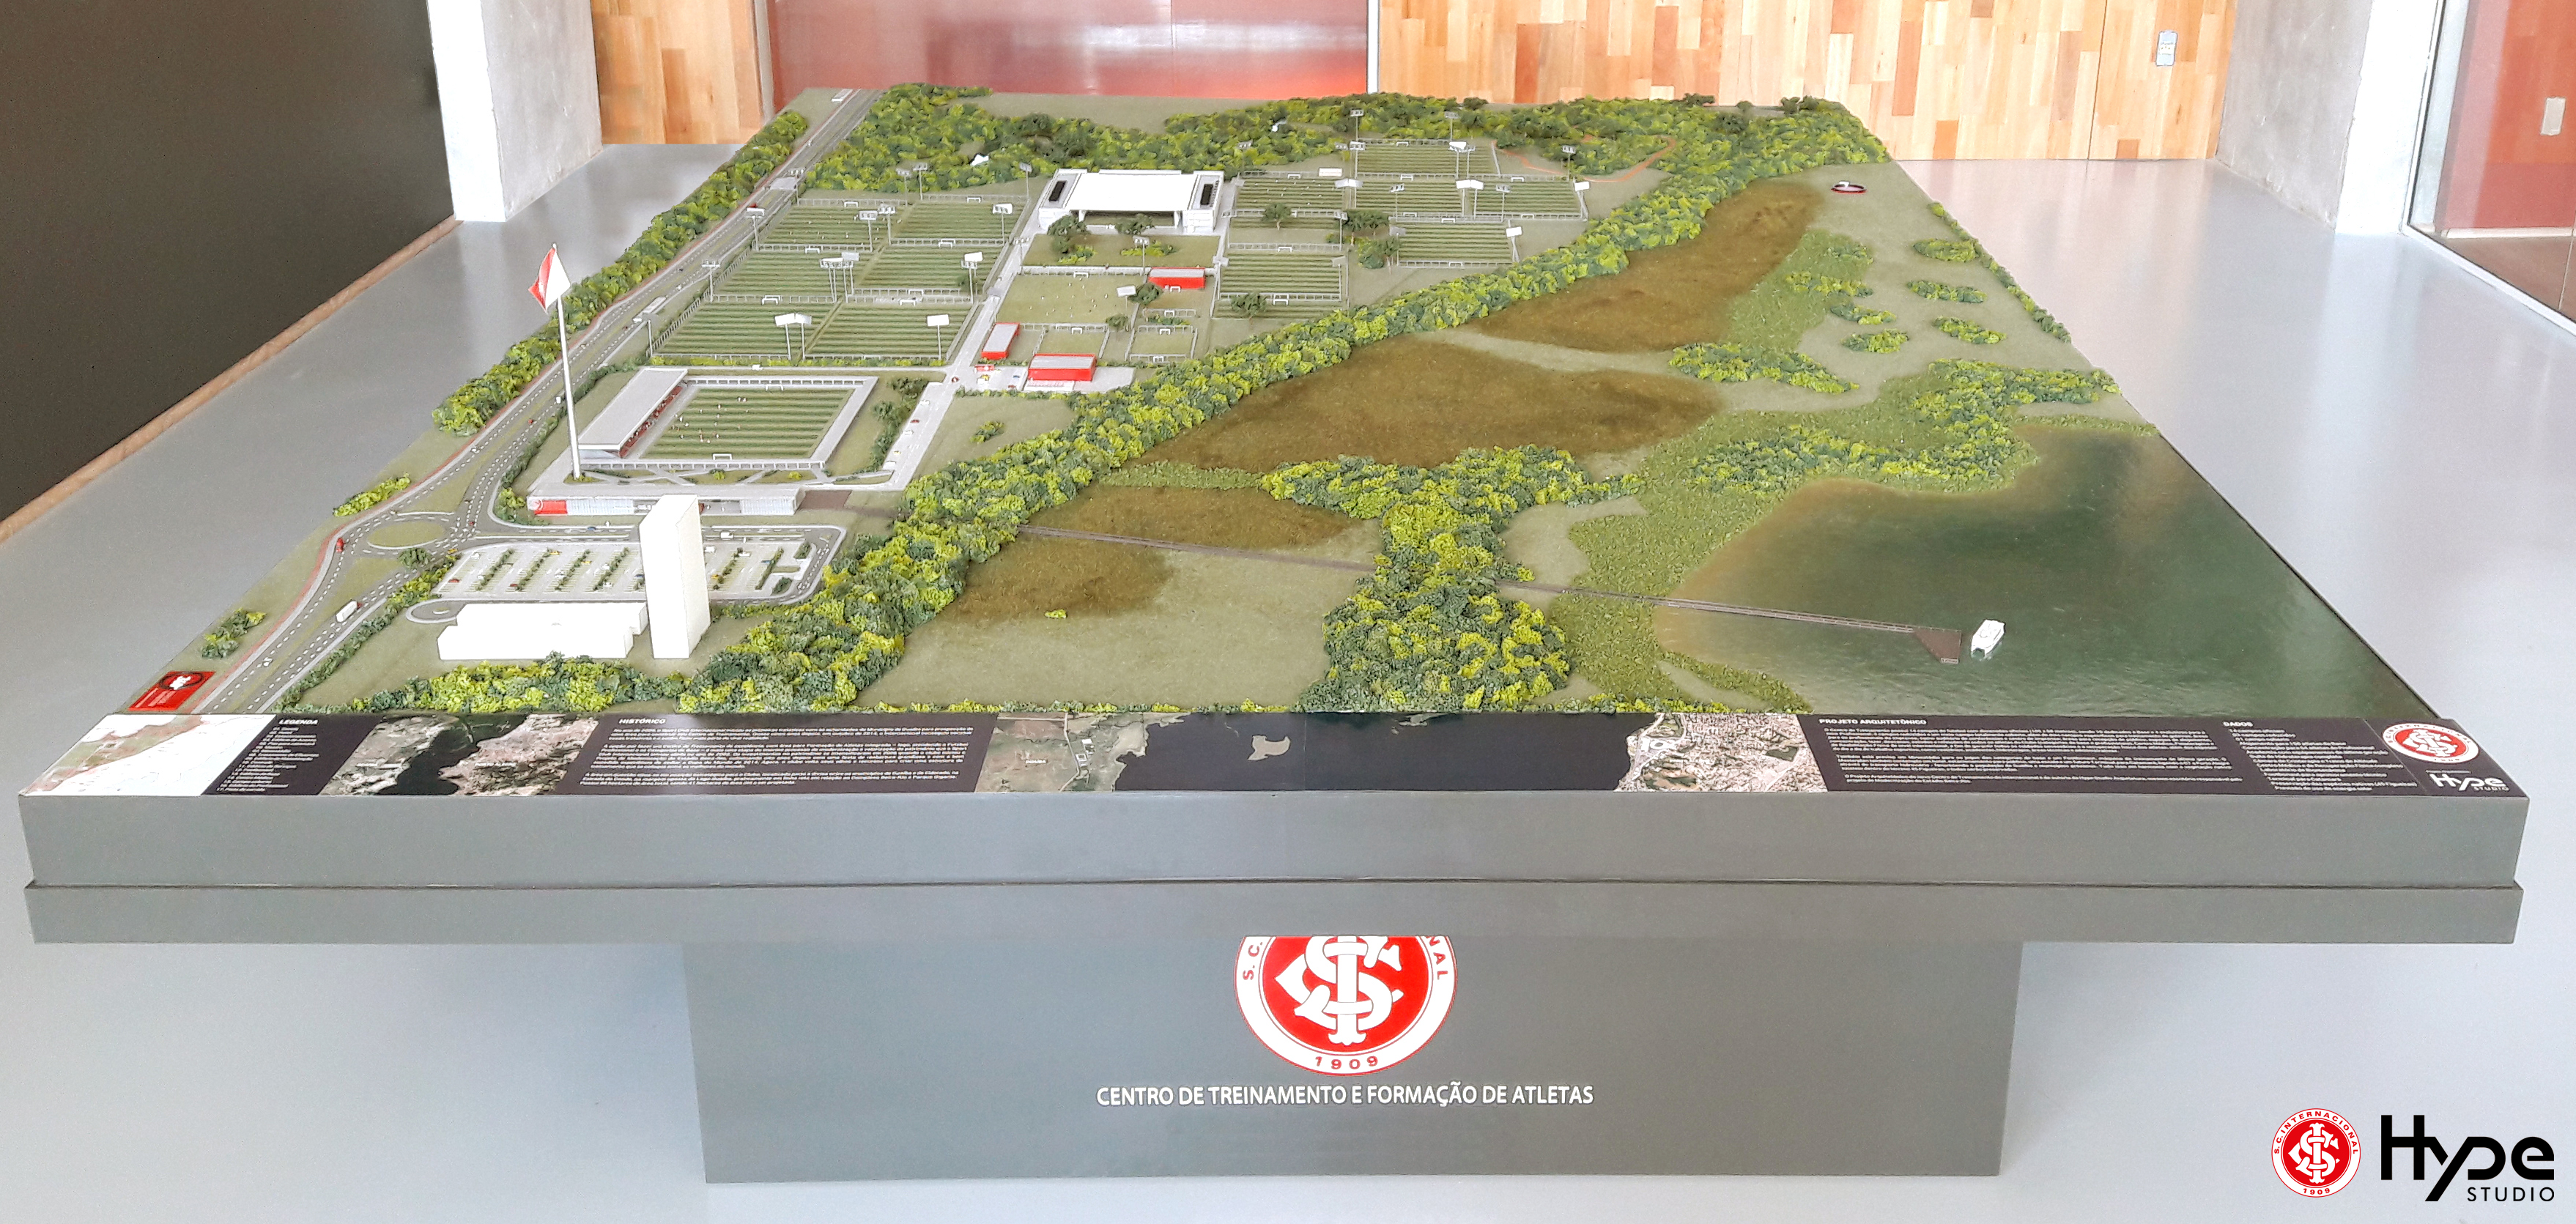 SCI Training Center - Model